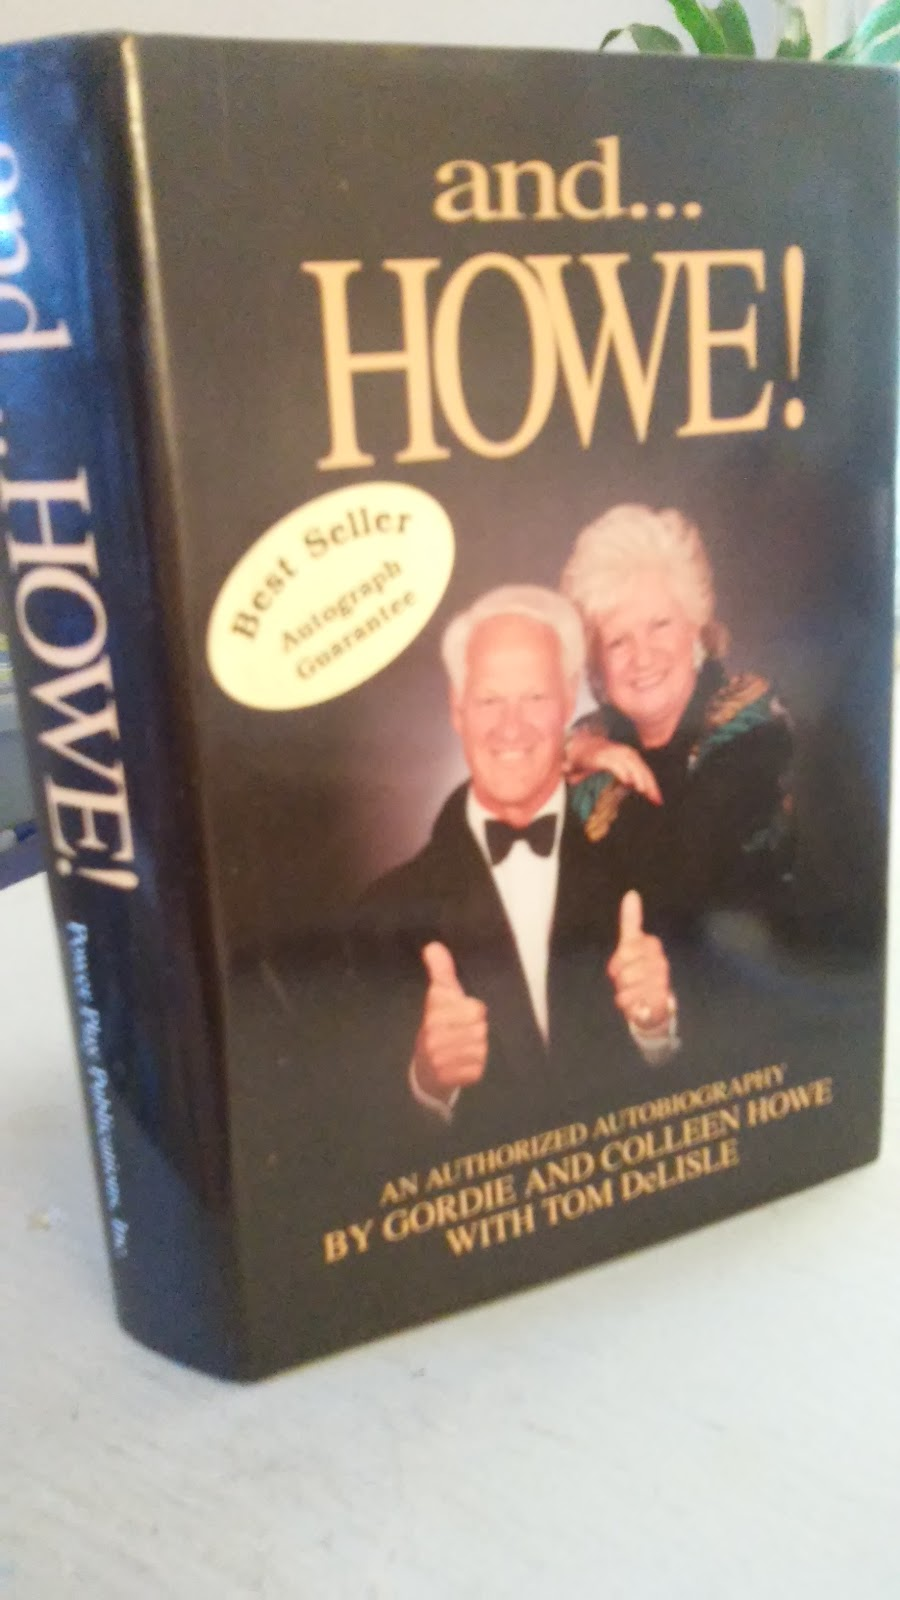 and howe cover.jpg